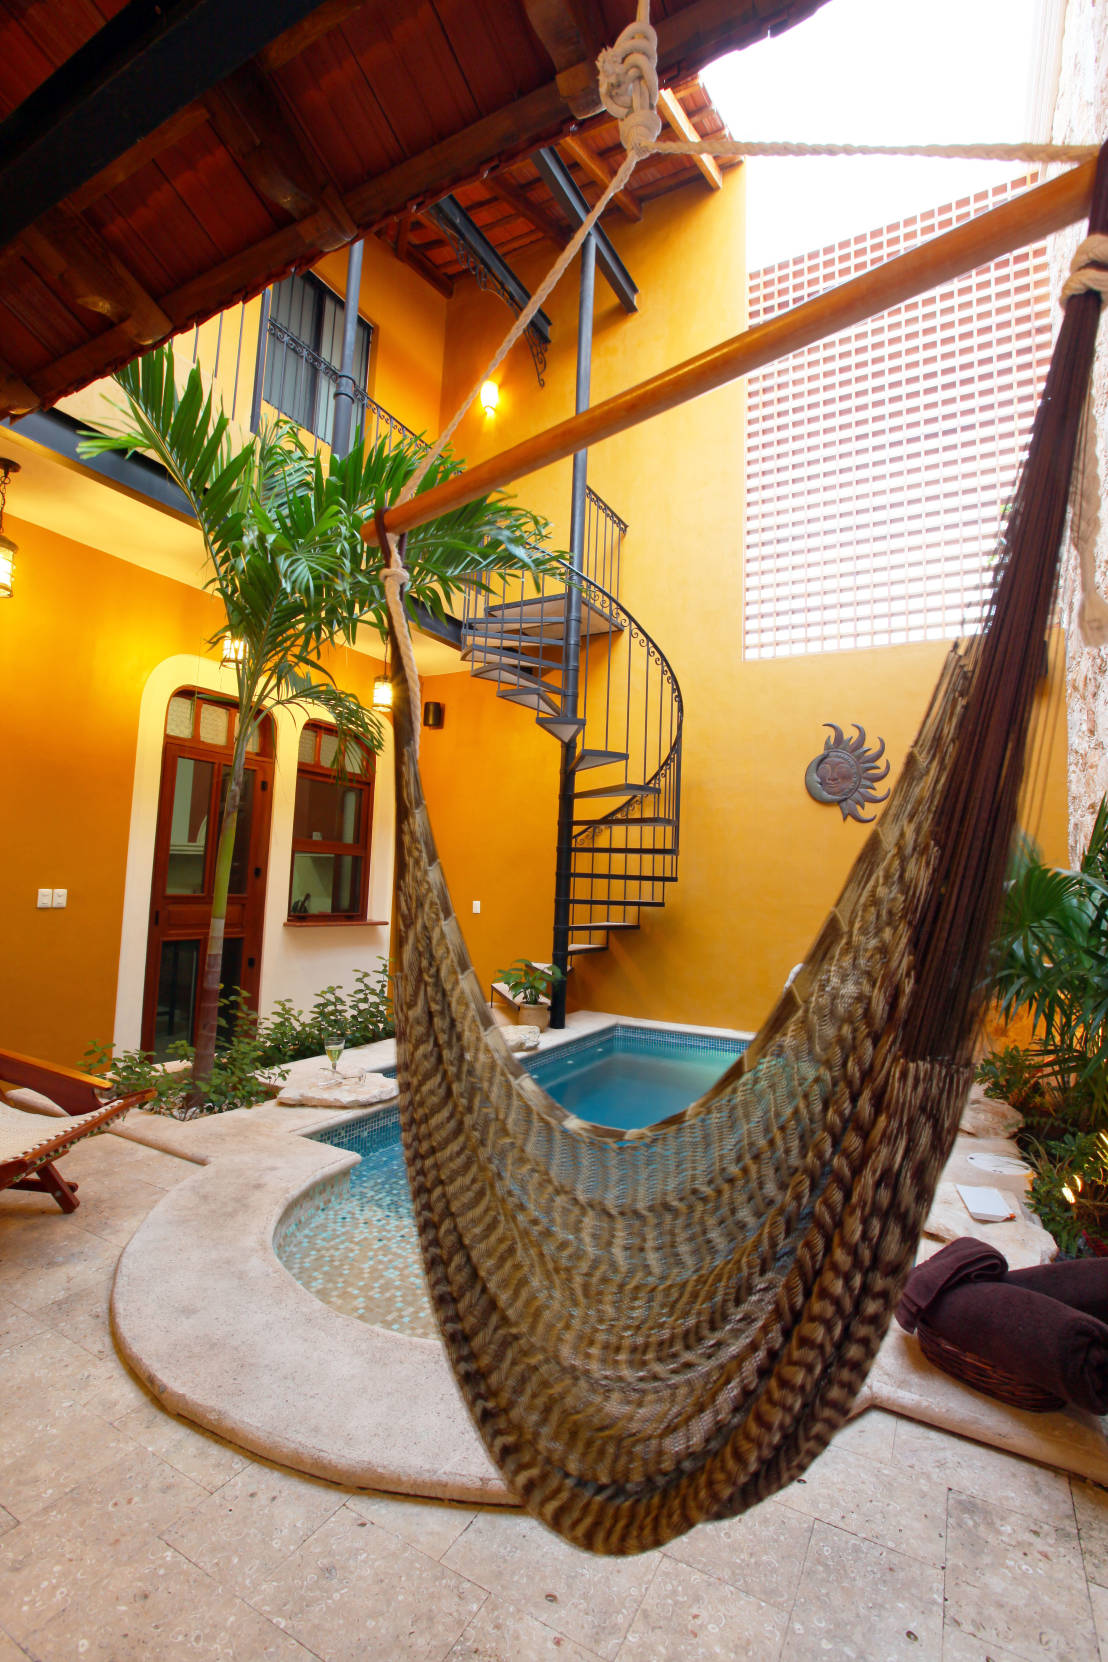 Bohemian-hammock-that-blends-in-with-the-vibrant-background-